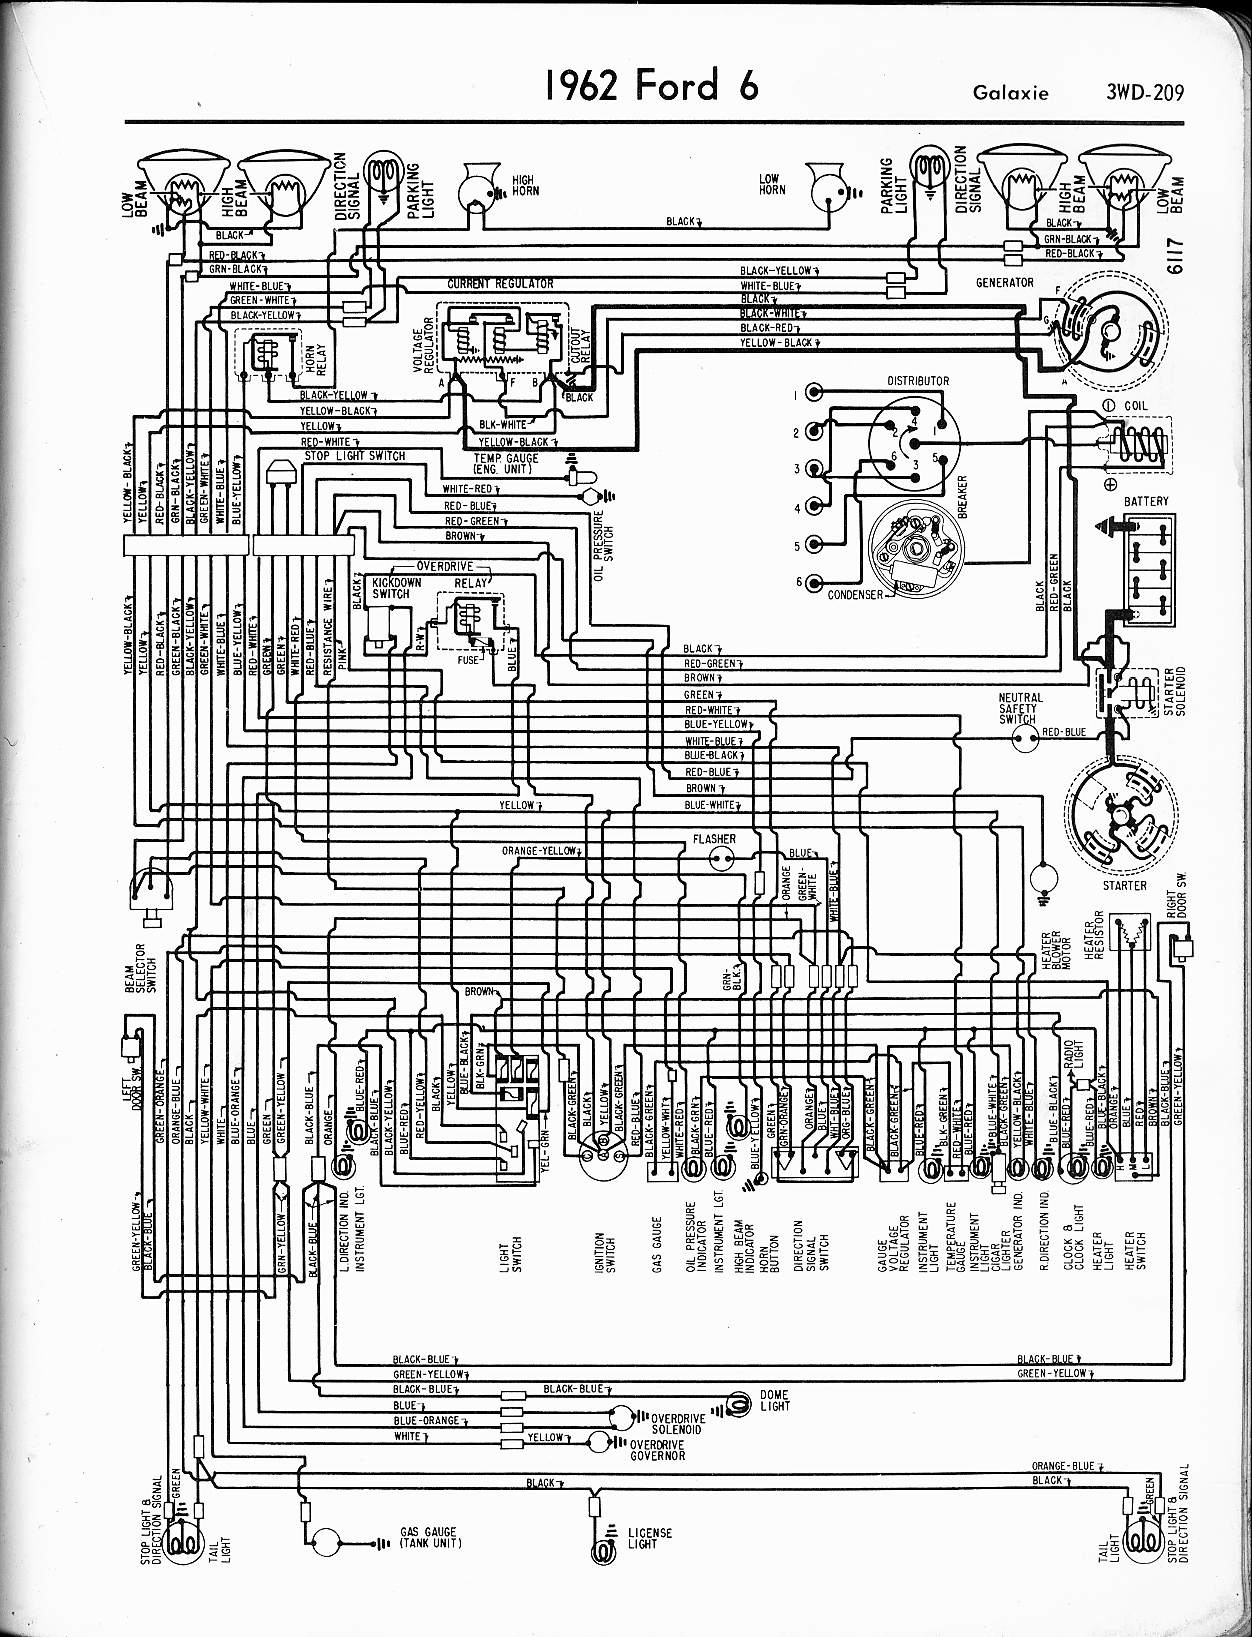 1966 Fairlane Wiring Diagram Library 77 Dodge Motorhome Gas Gauge 57 65 Ford Diagrams Rh Oldcarmanualproject Com Ignition Switch Mustang